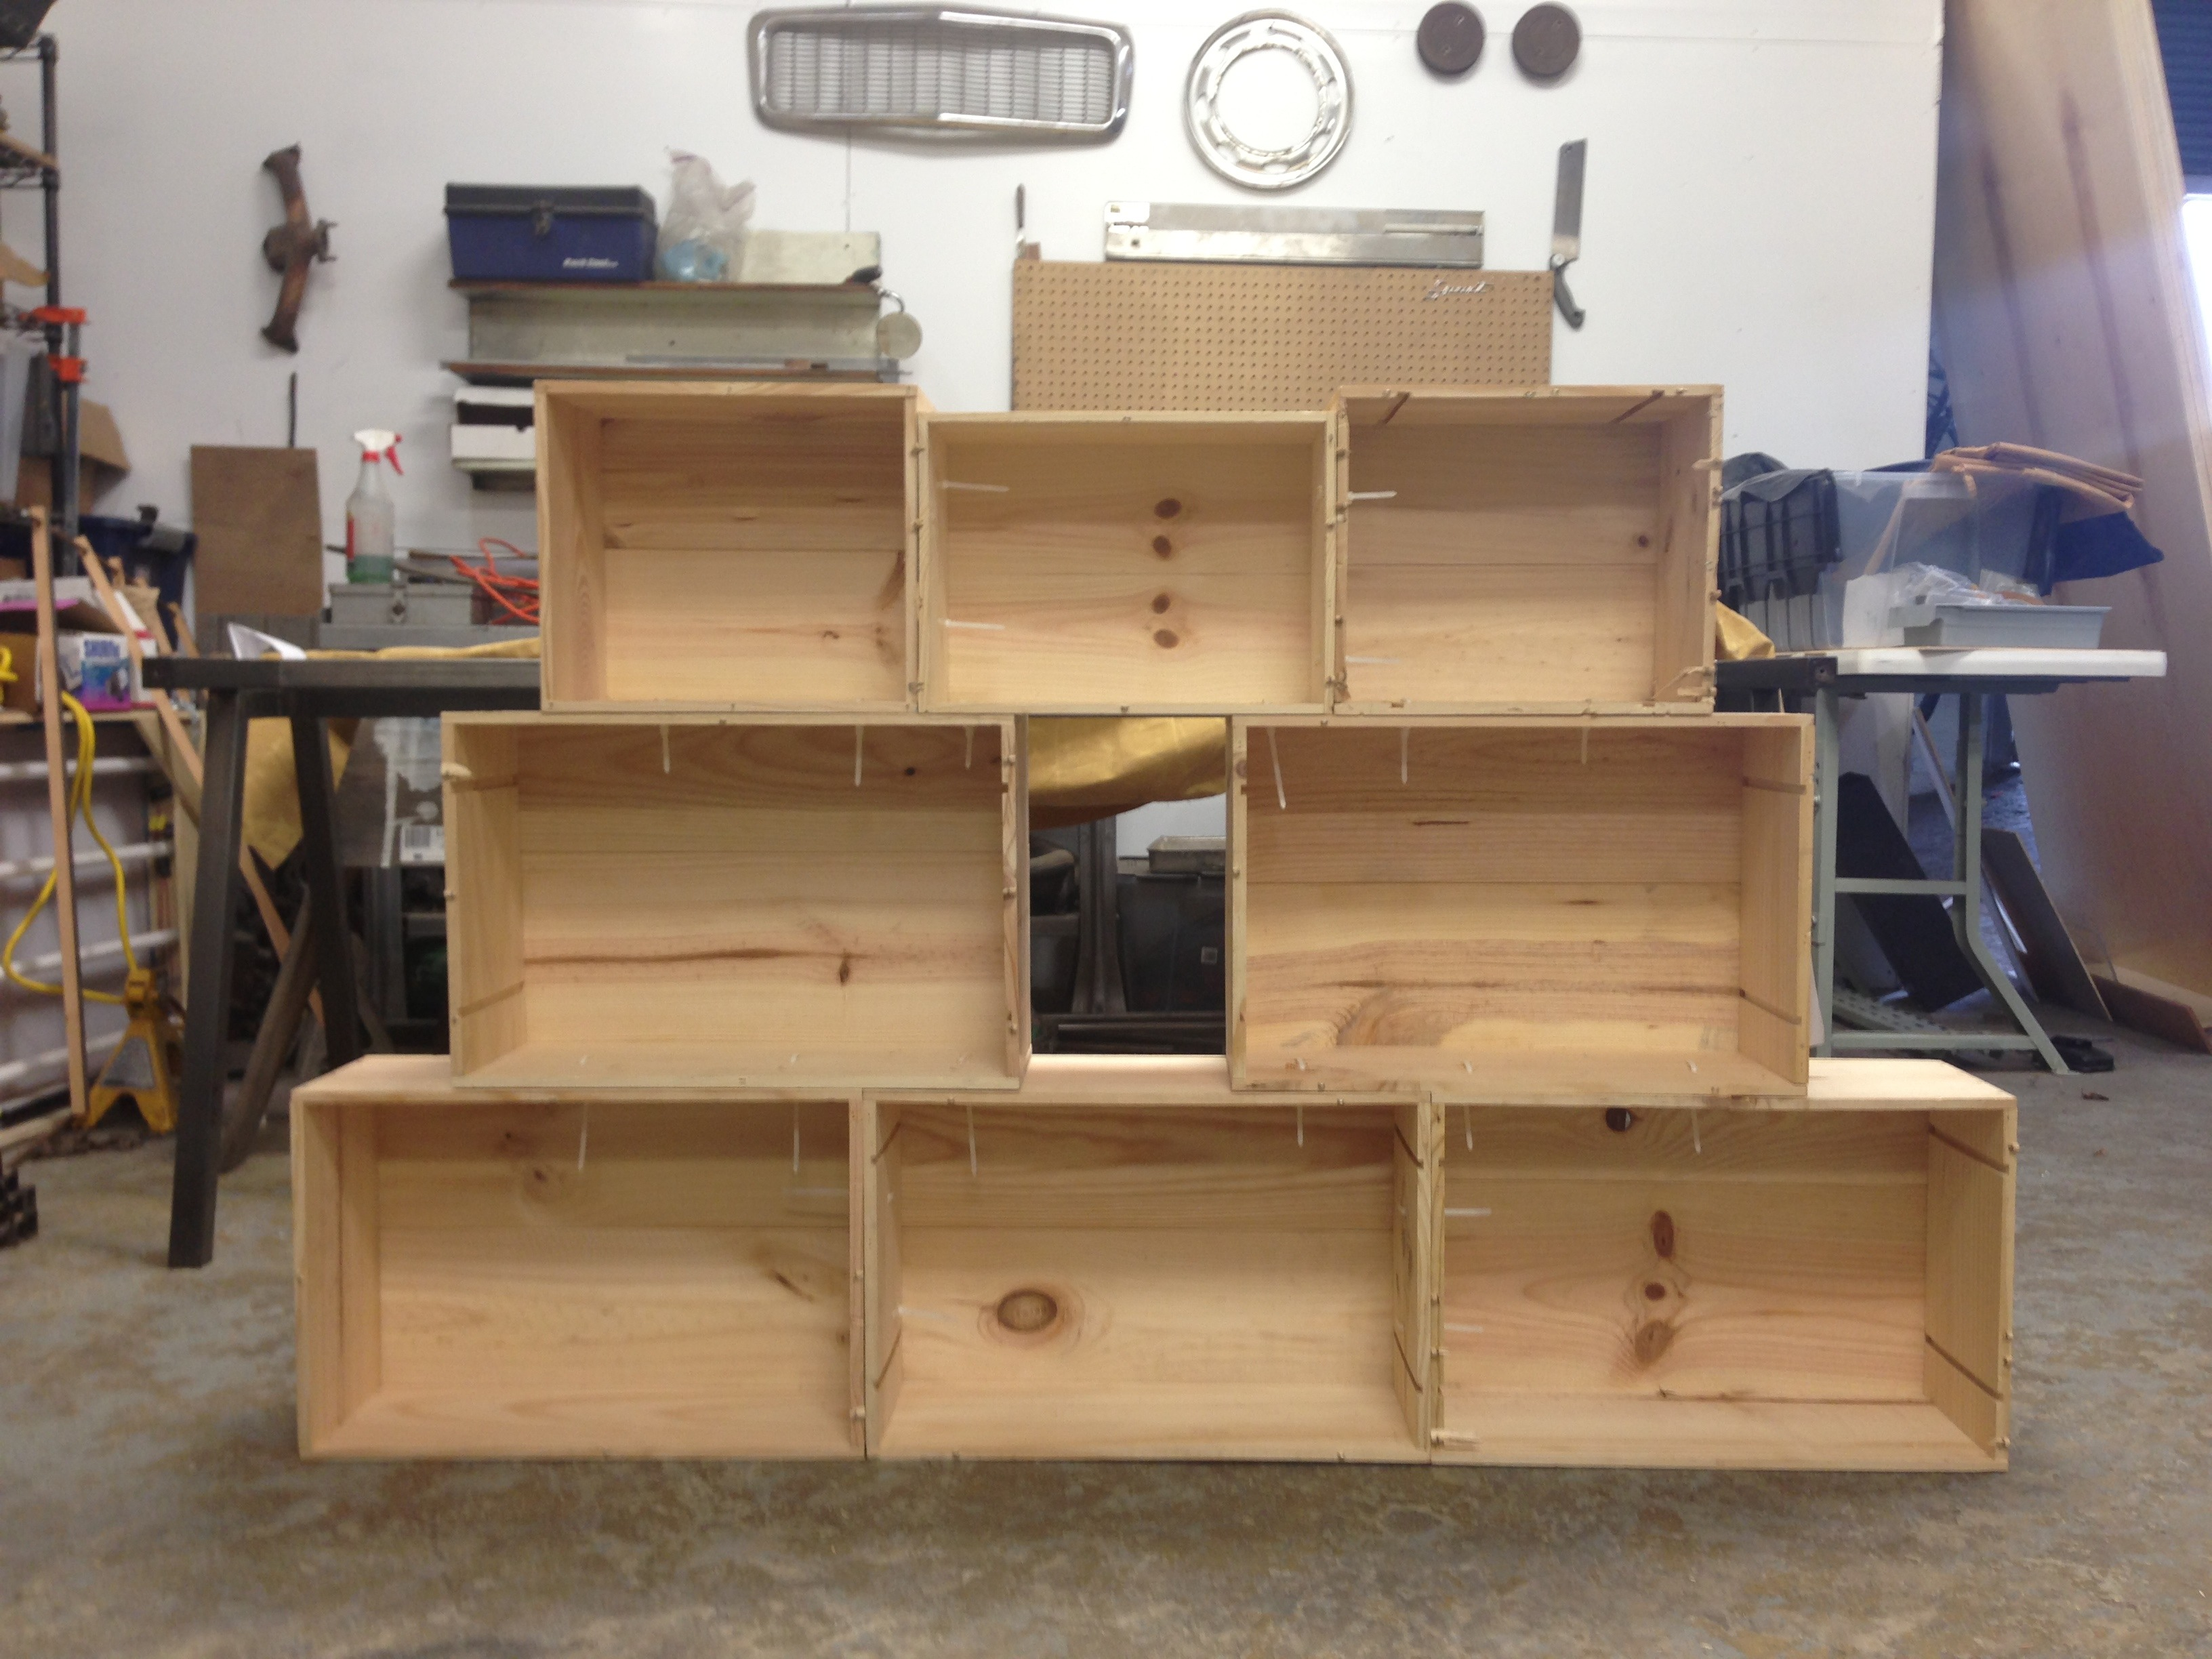 Easy Shelves From Old Wooden Crates 4 Steps